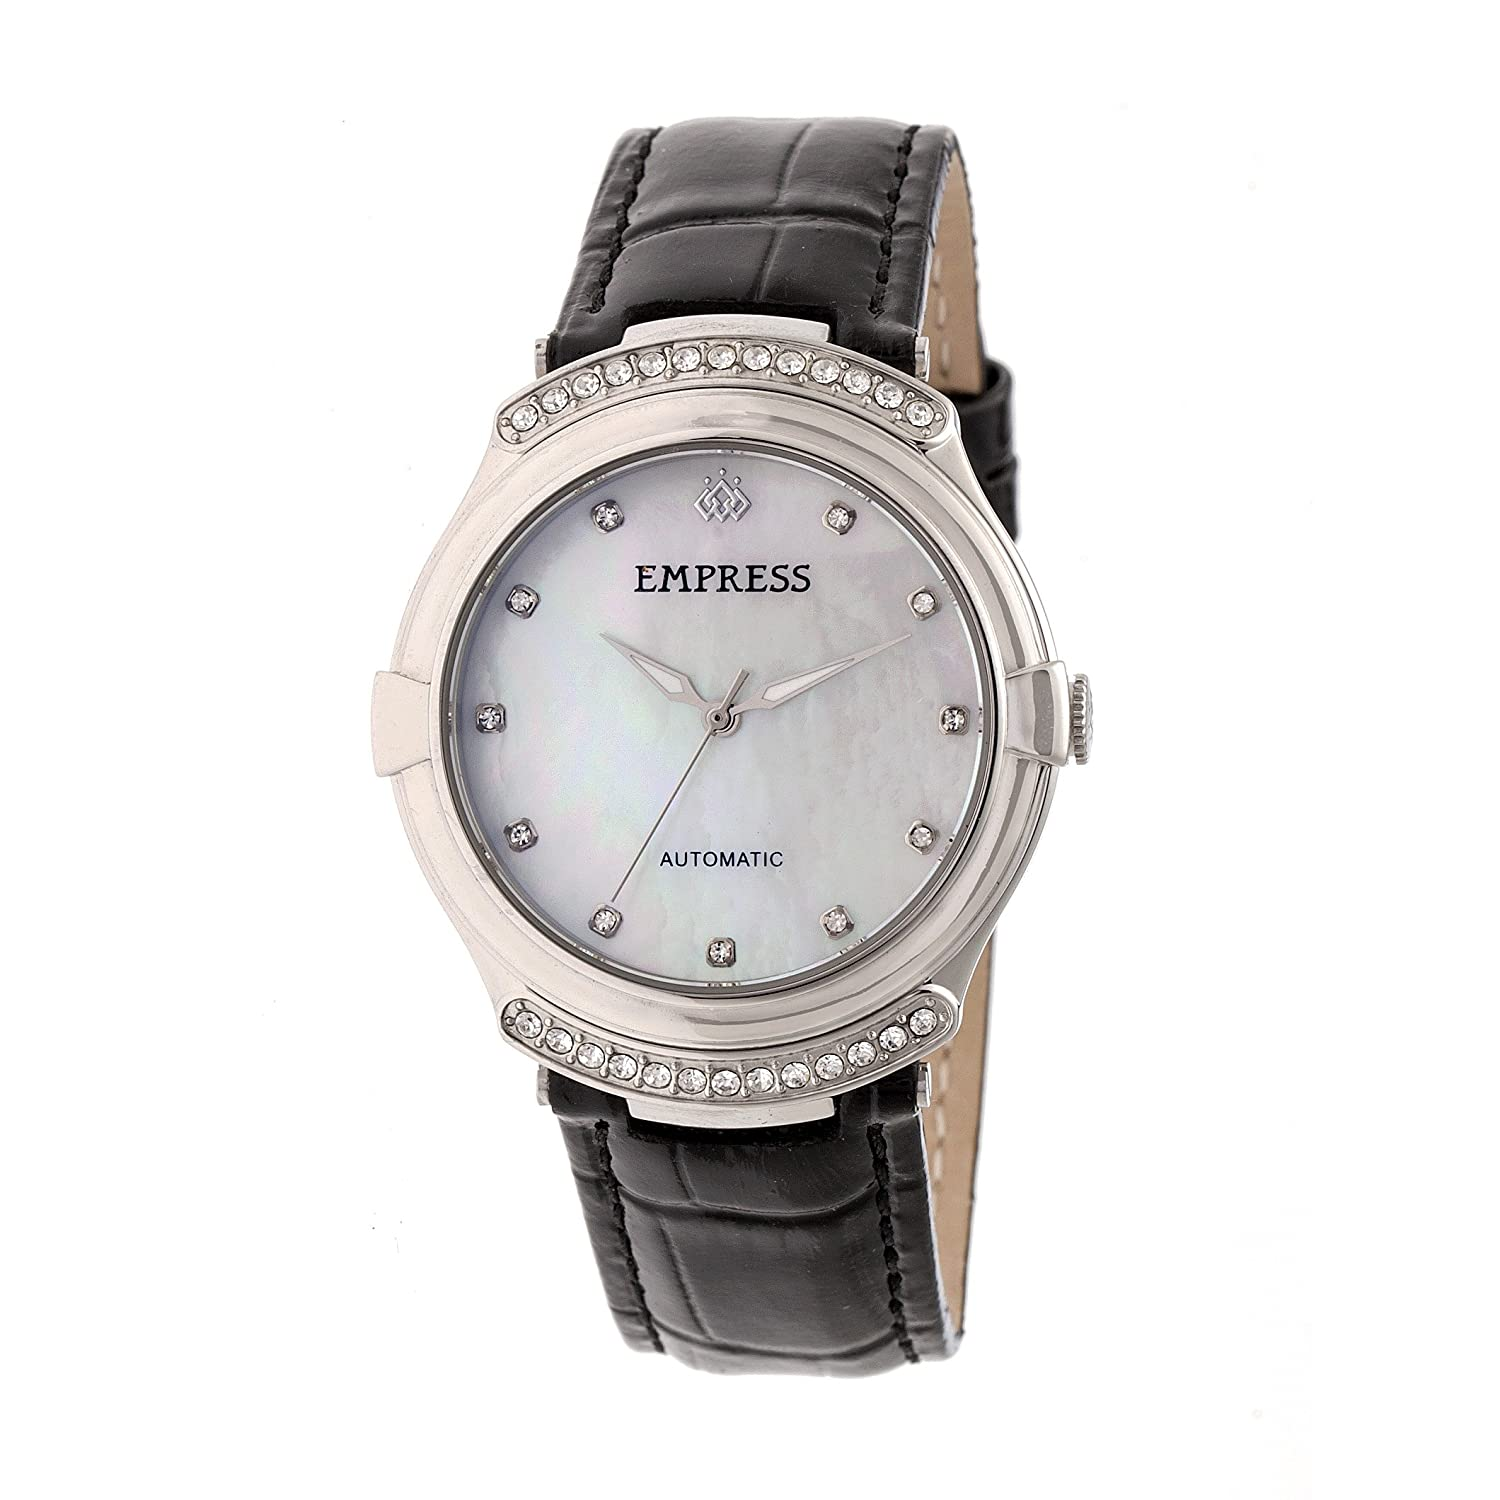 Empress em2201 Francesca Women 's Watch B071G6XLFC